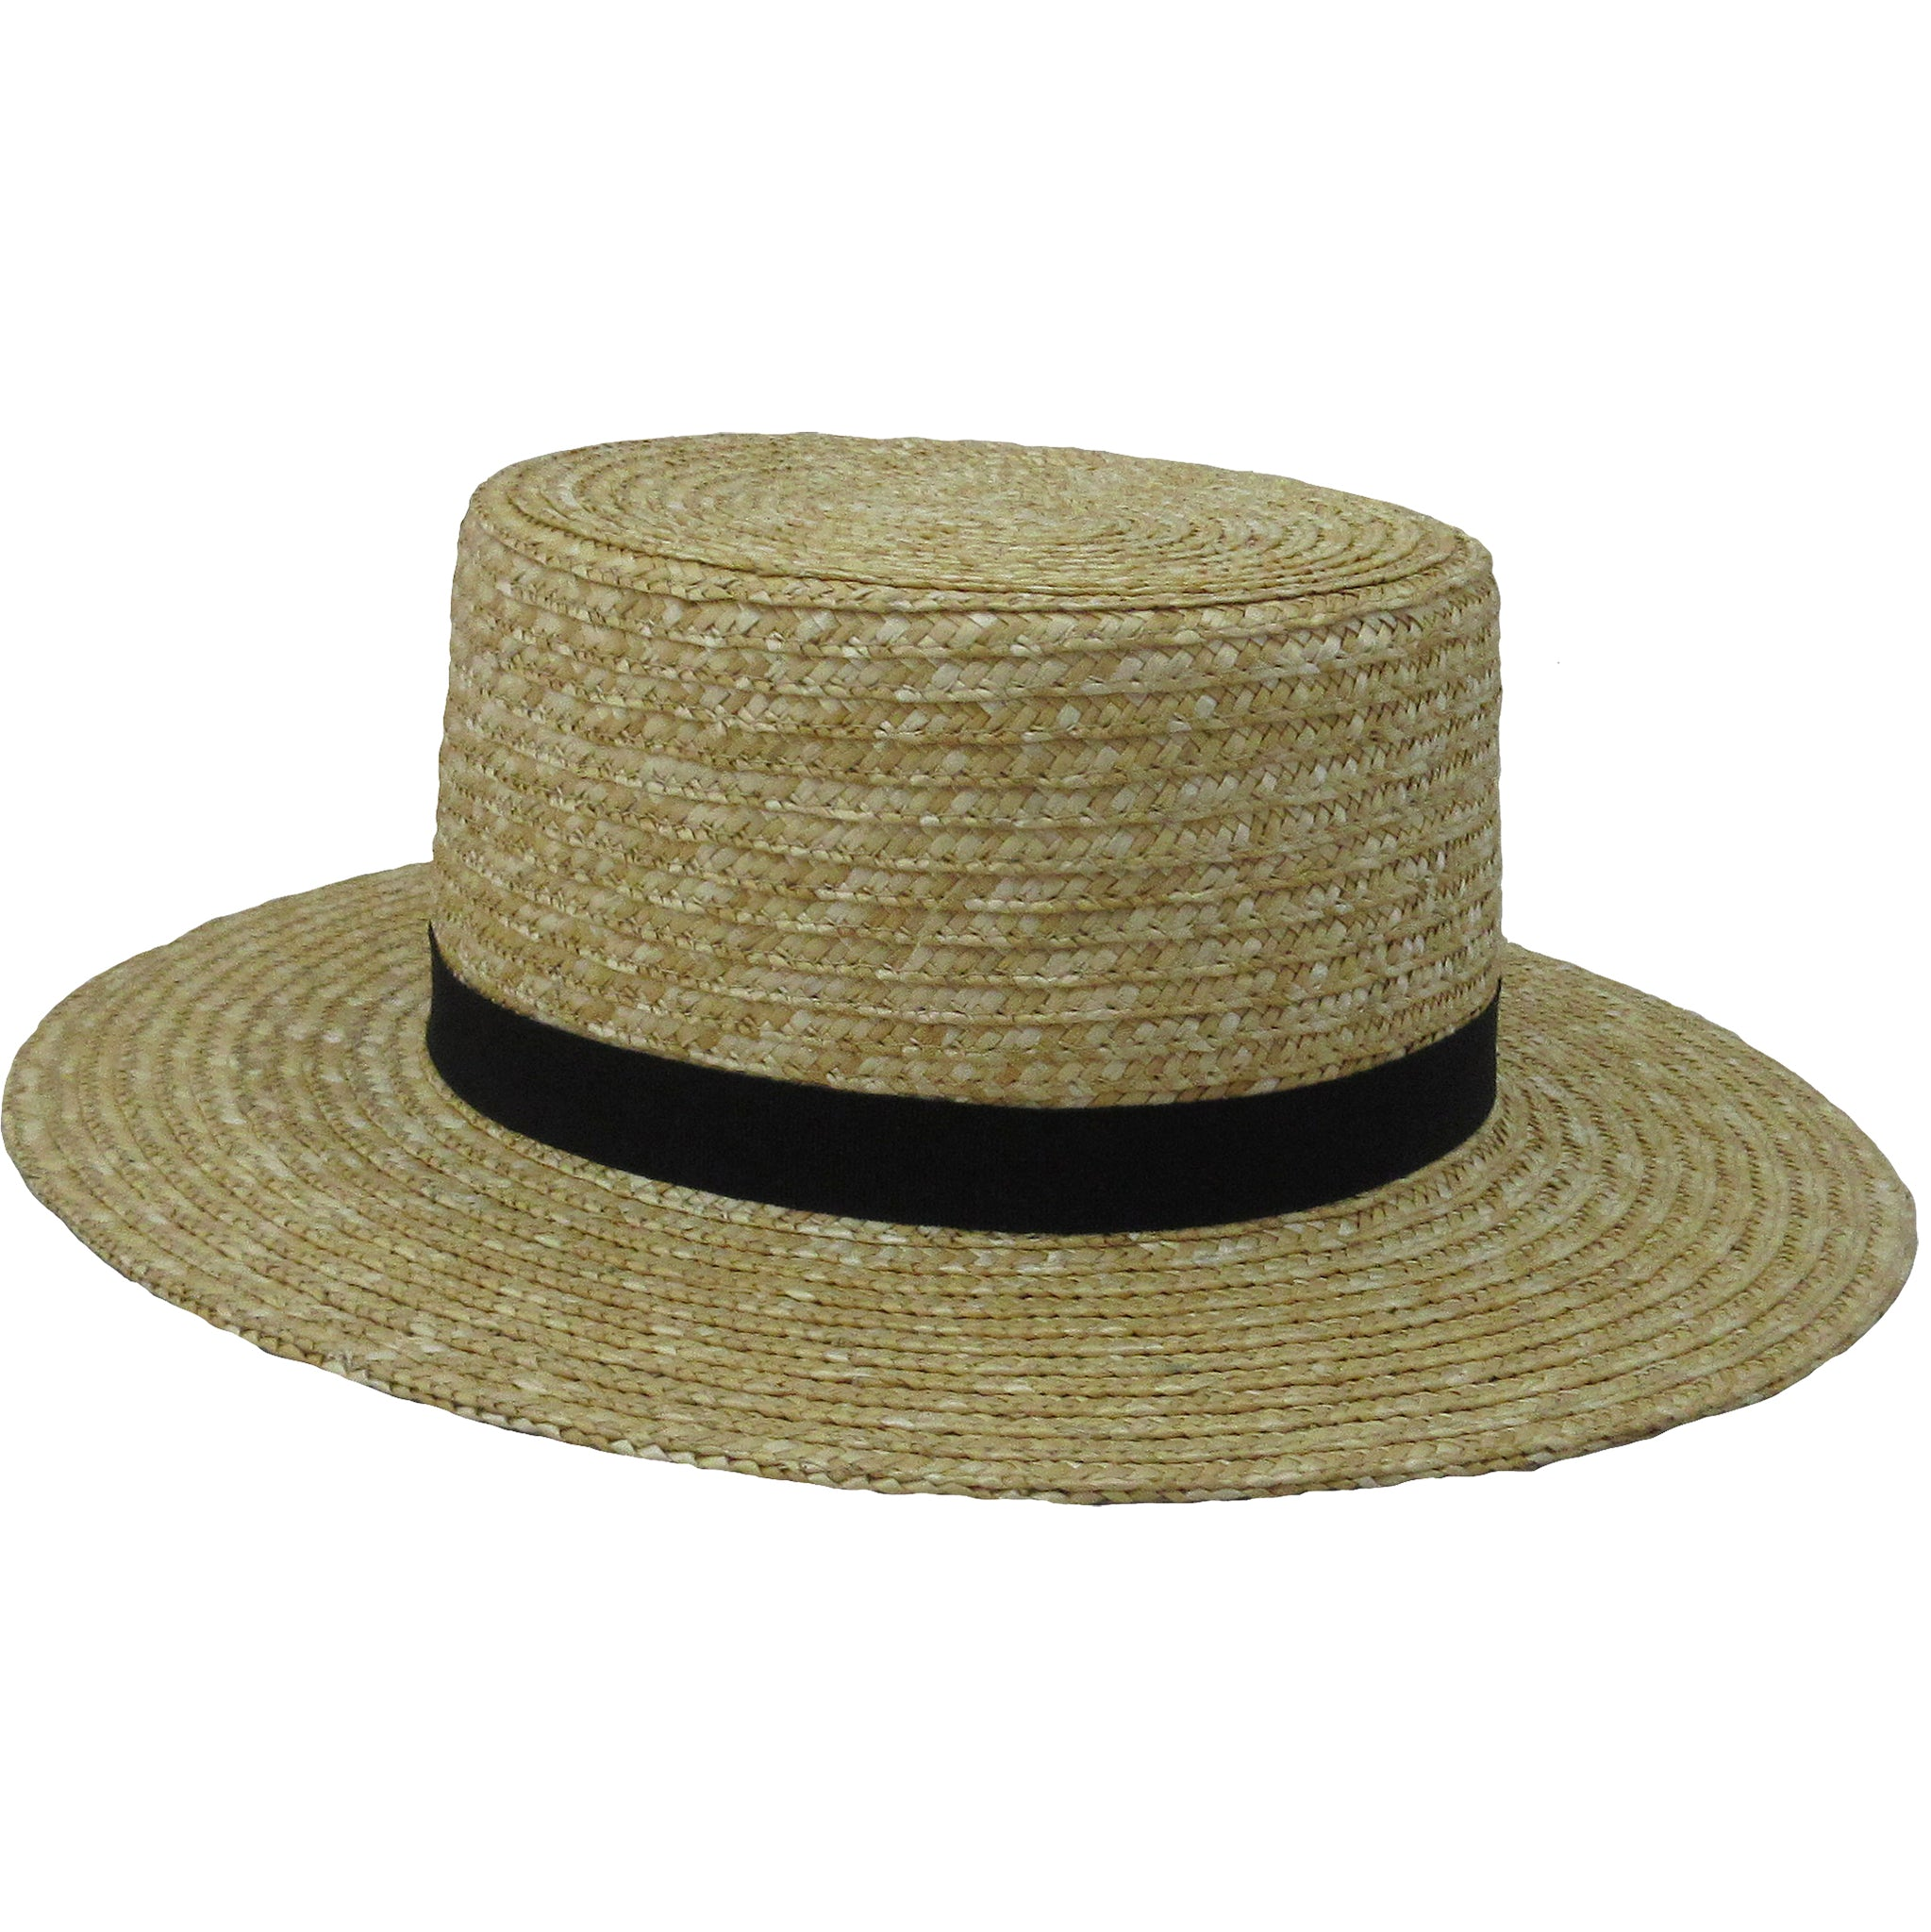 d77a306c7a0 Shop for and Buy mens straw hat Online - Macy s - Official Site